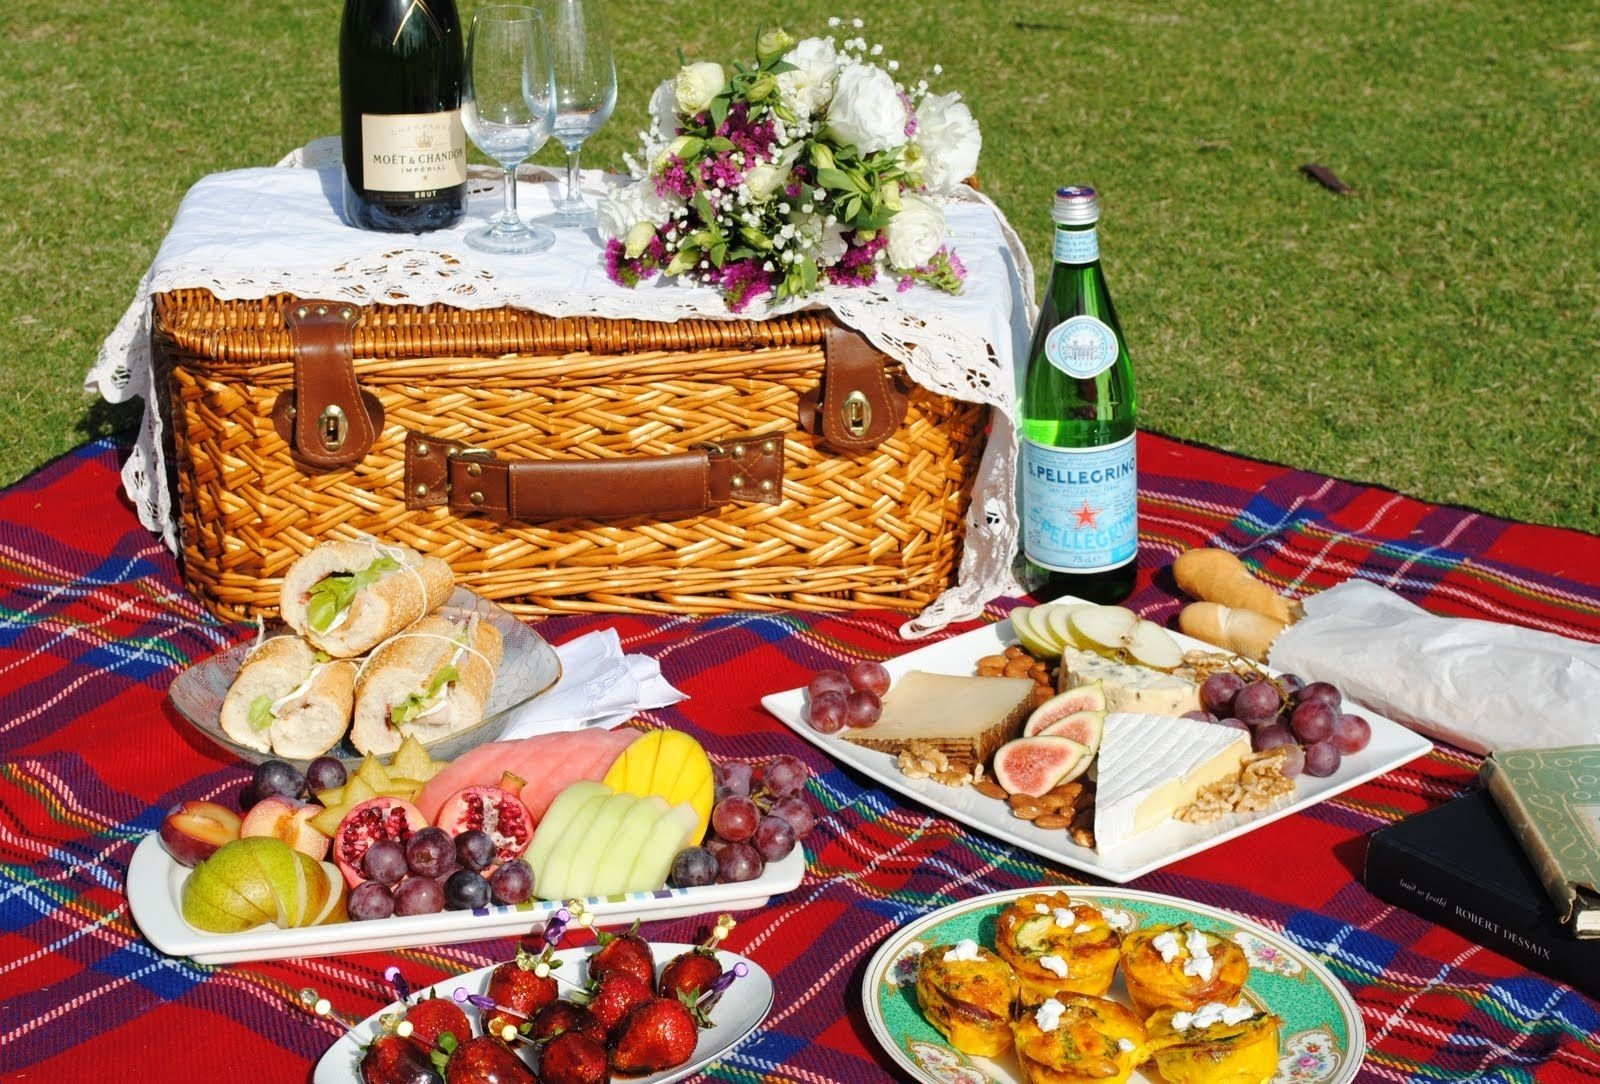 10 Gorgeous Picnic Food Ideas For Two simply delicious picnic fare food pinterest picnics romantic 1 2020